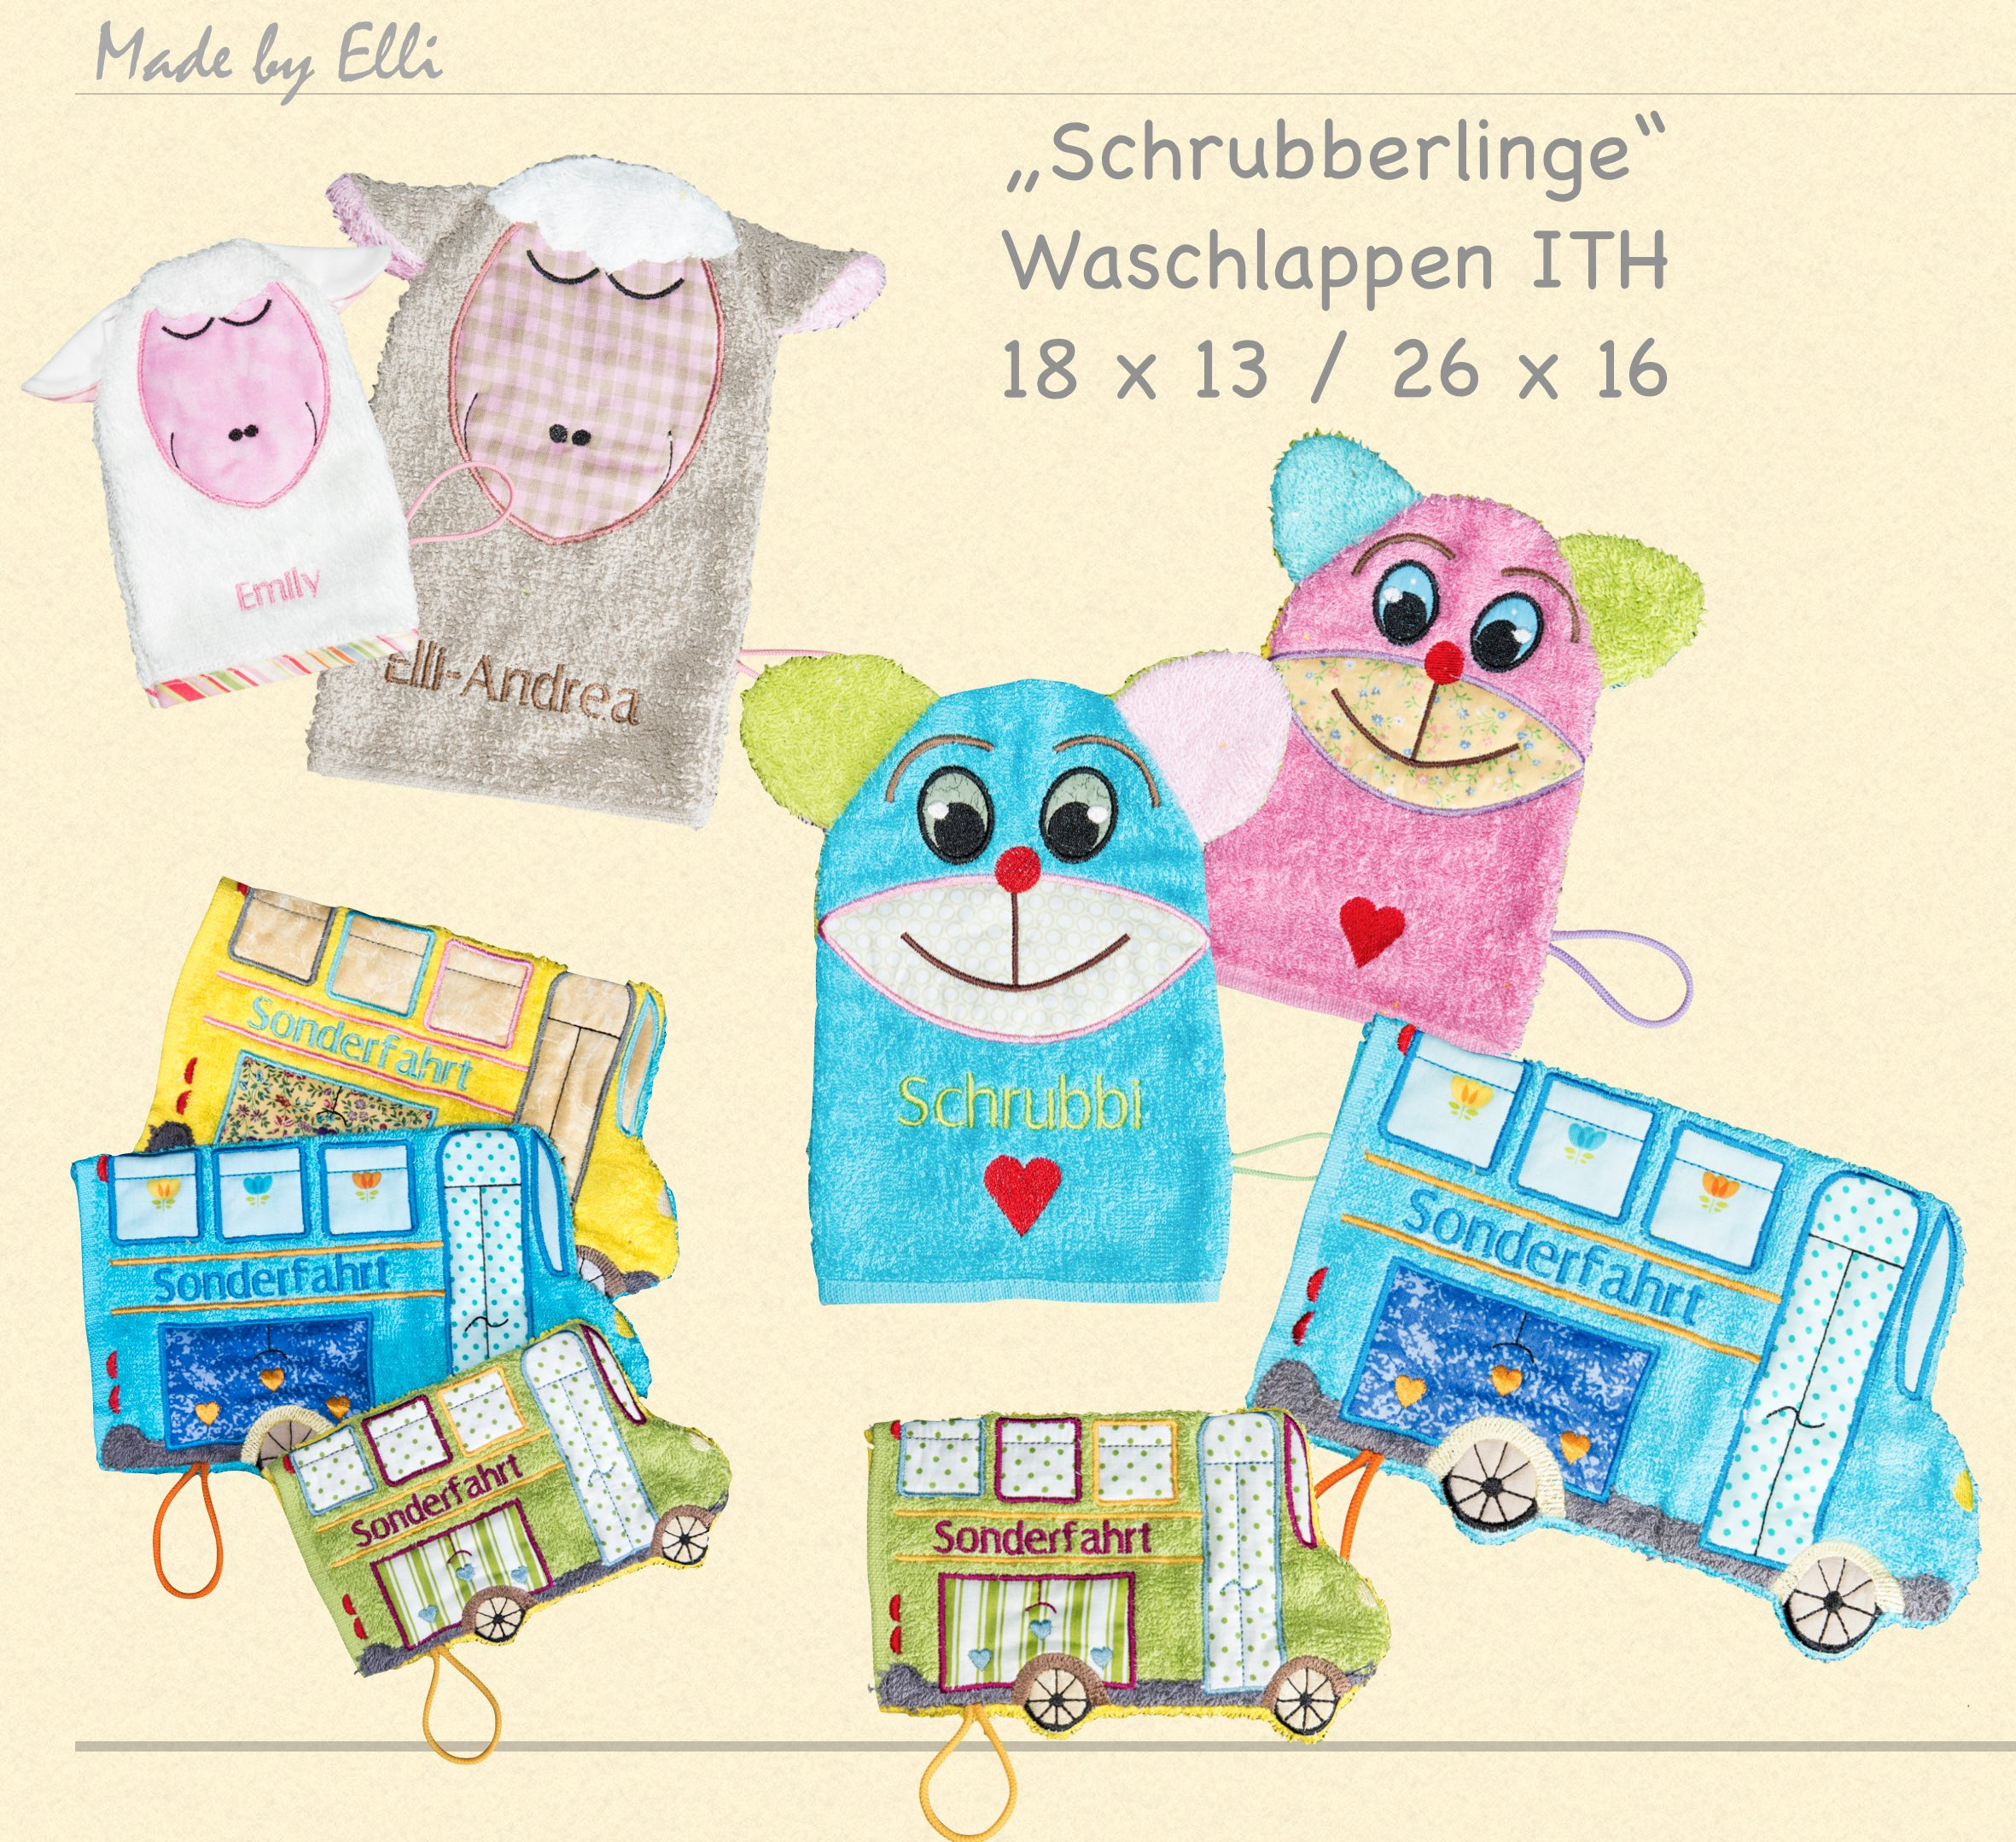 Schrubberlinge ITH